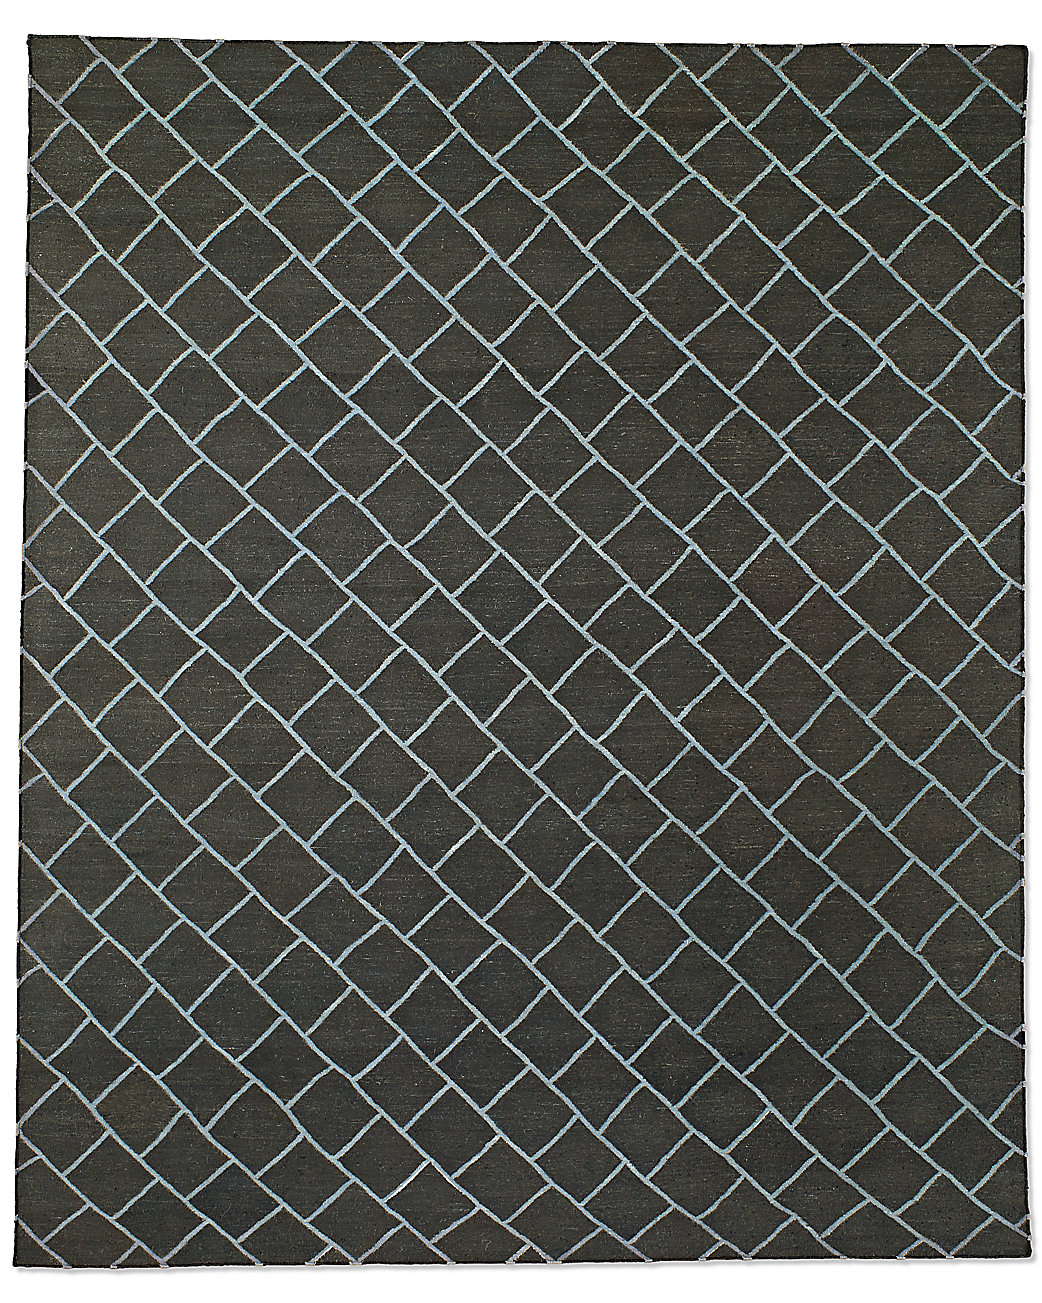 Staggered Diamond Flatweave Rug - Charcoal/Grey